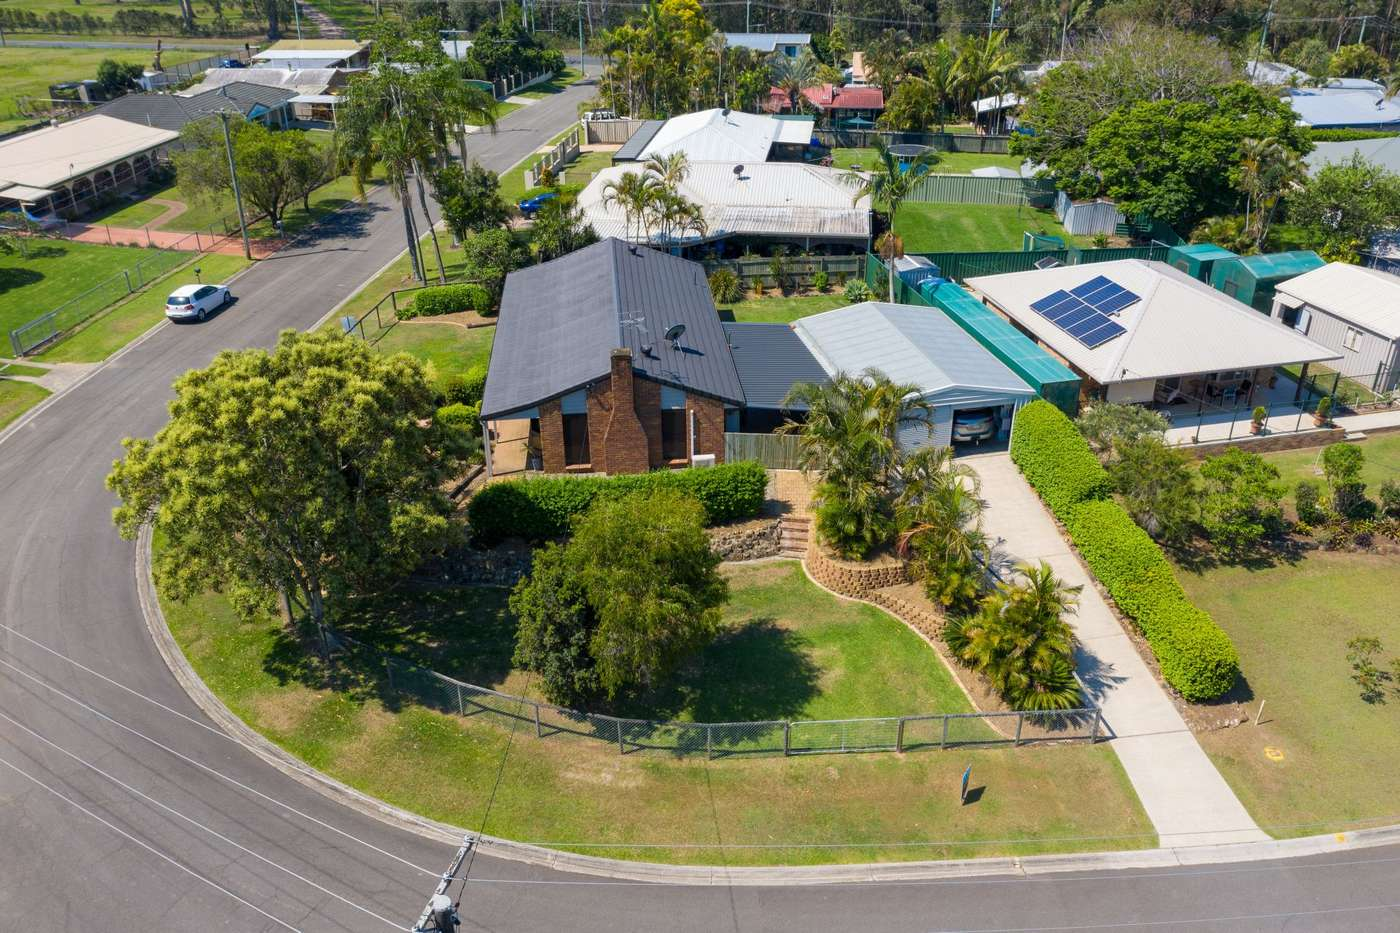 Main view of Homely house listing, 11-15 Avala Crescent, Elimbah, QLD 4516